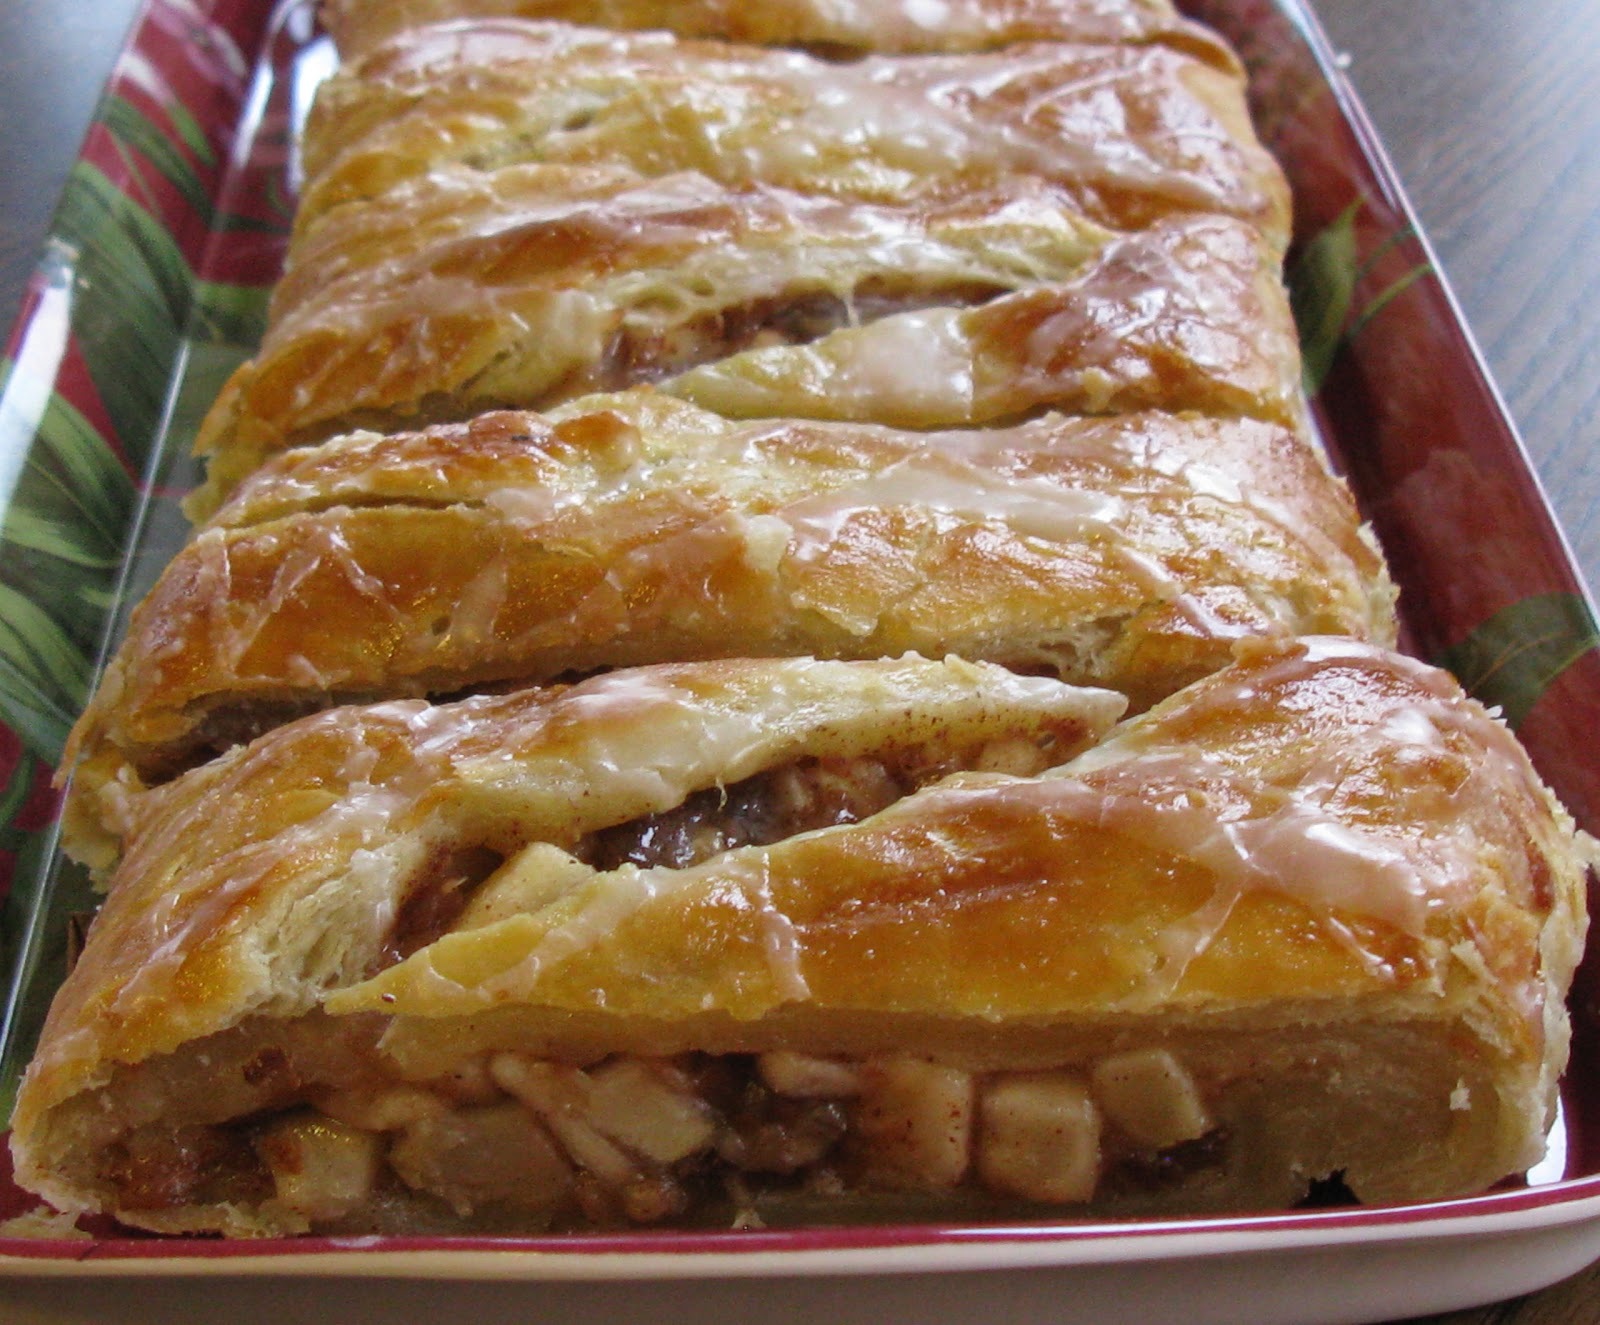 Food for A Hungry Soul: Apple and Date Turnover